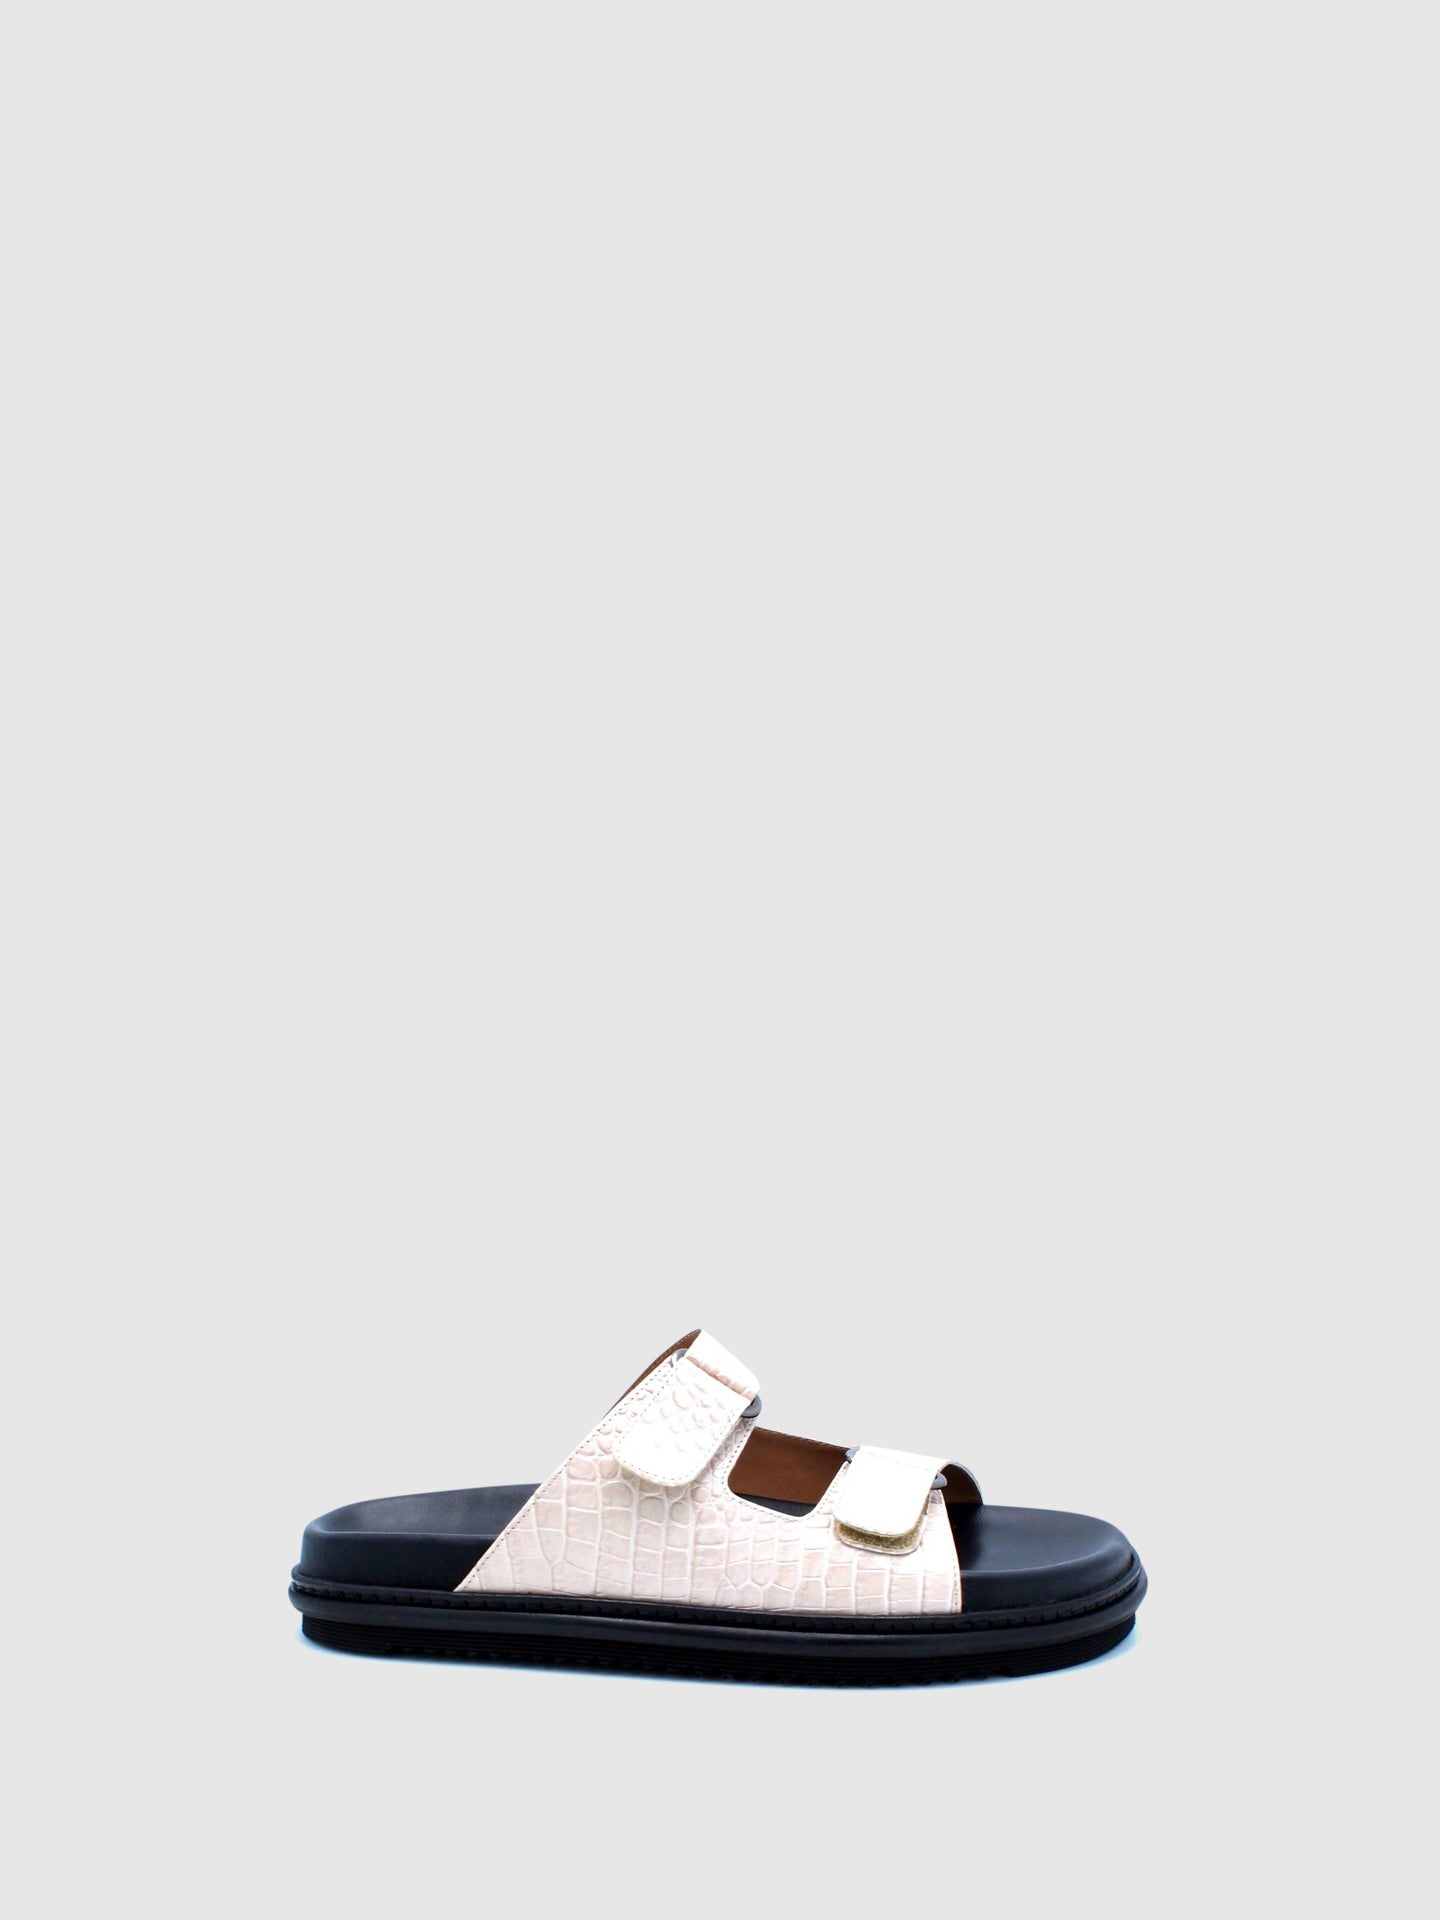 JJ Heitor White Leather Flat Sandals